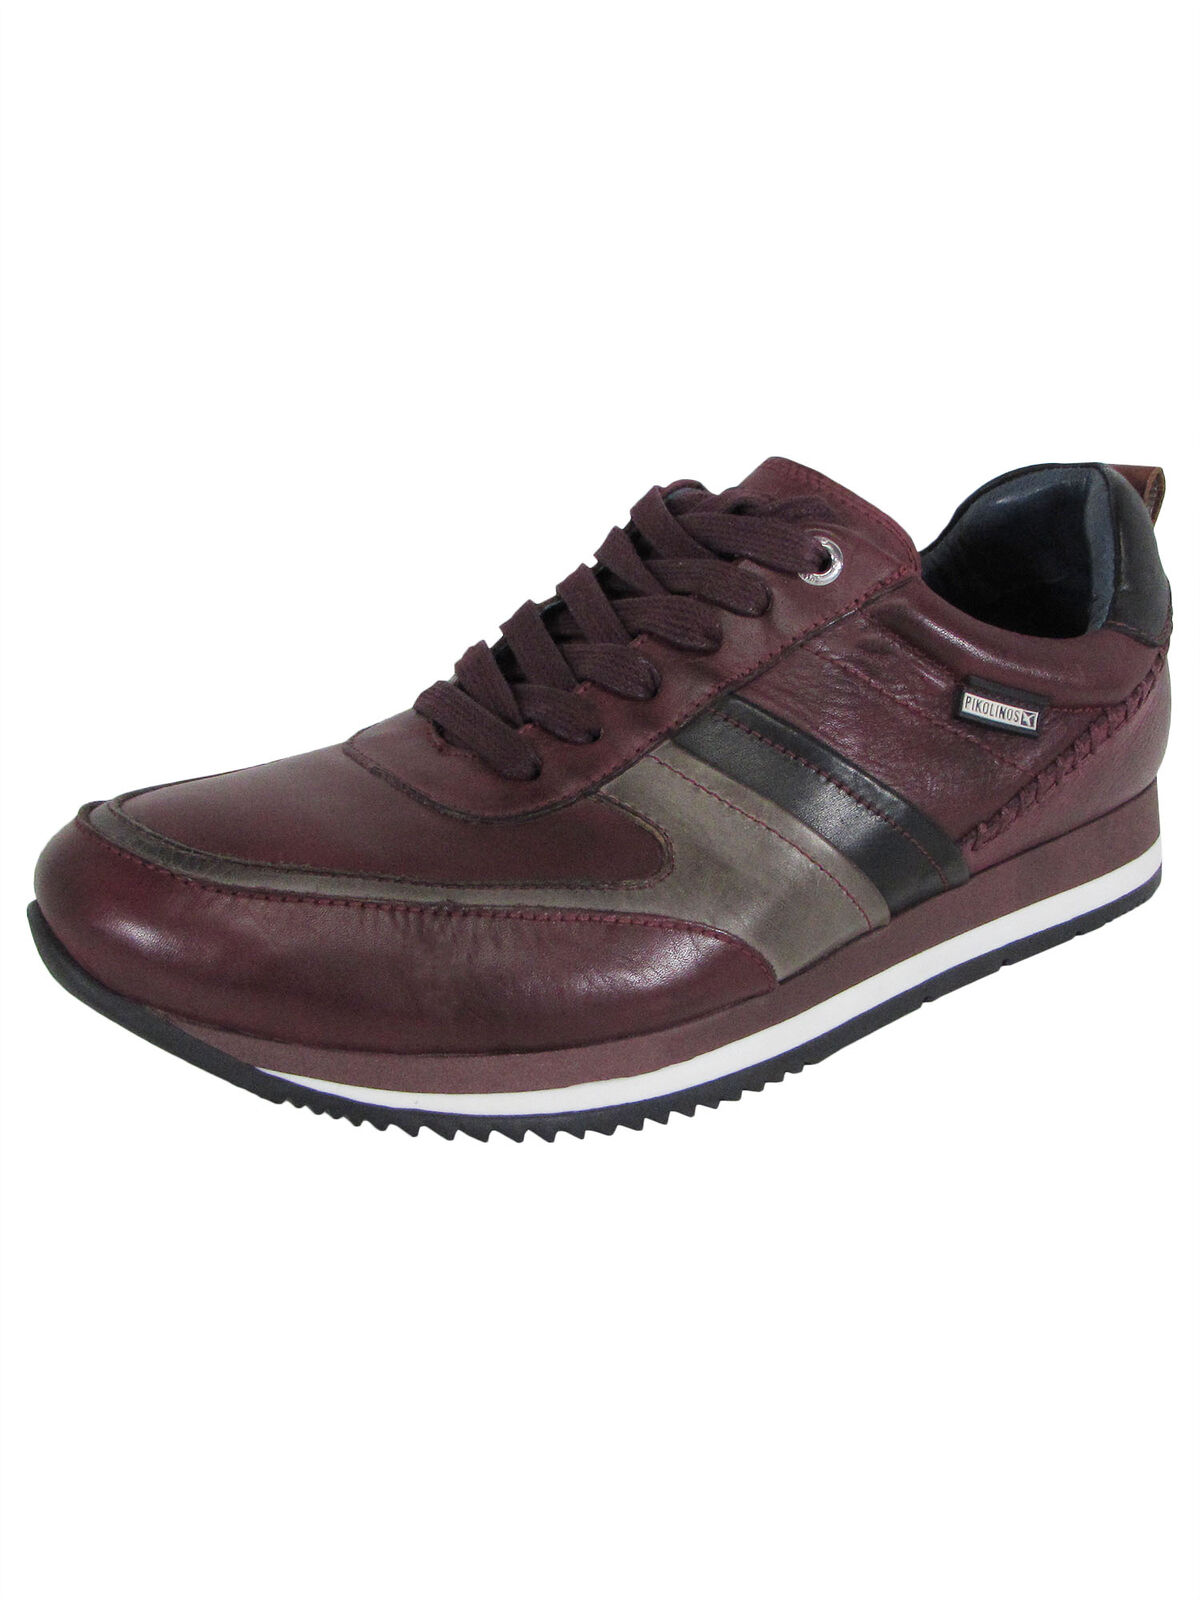 Pikolinos Homme Palermo M3H-6122 Turnchaussures